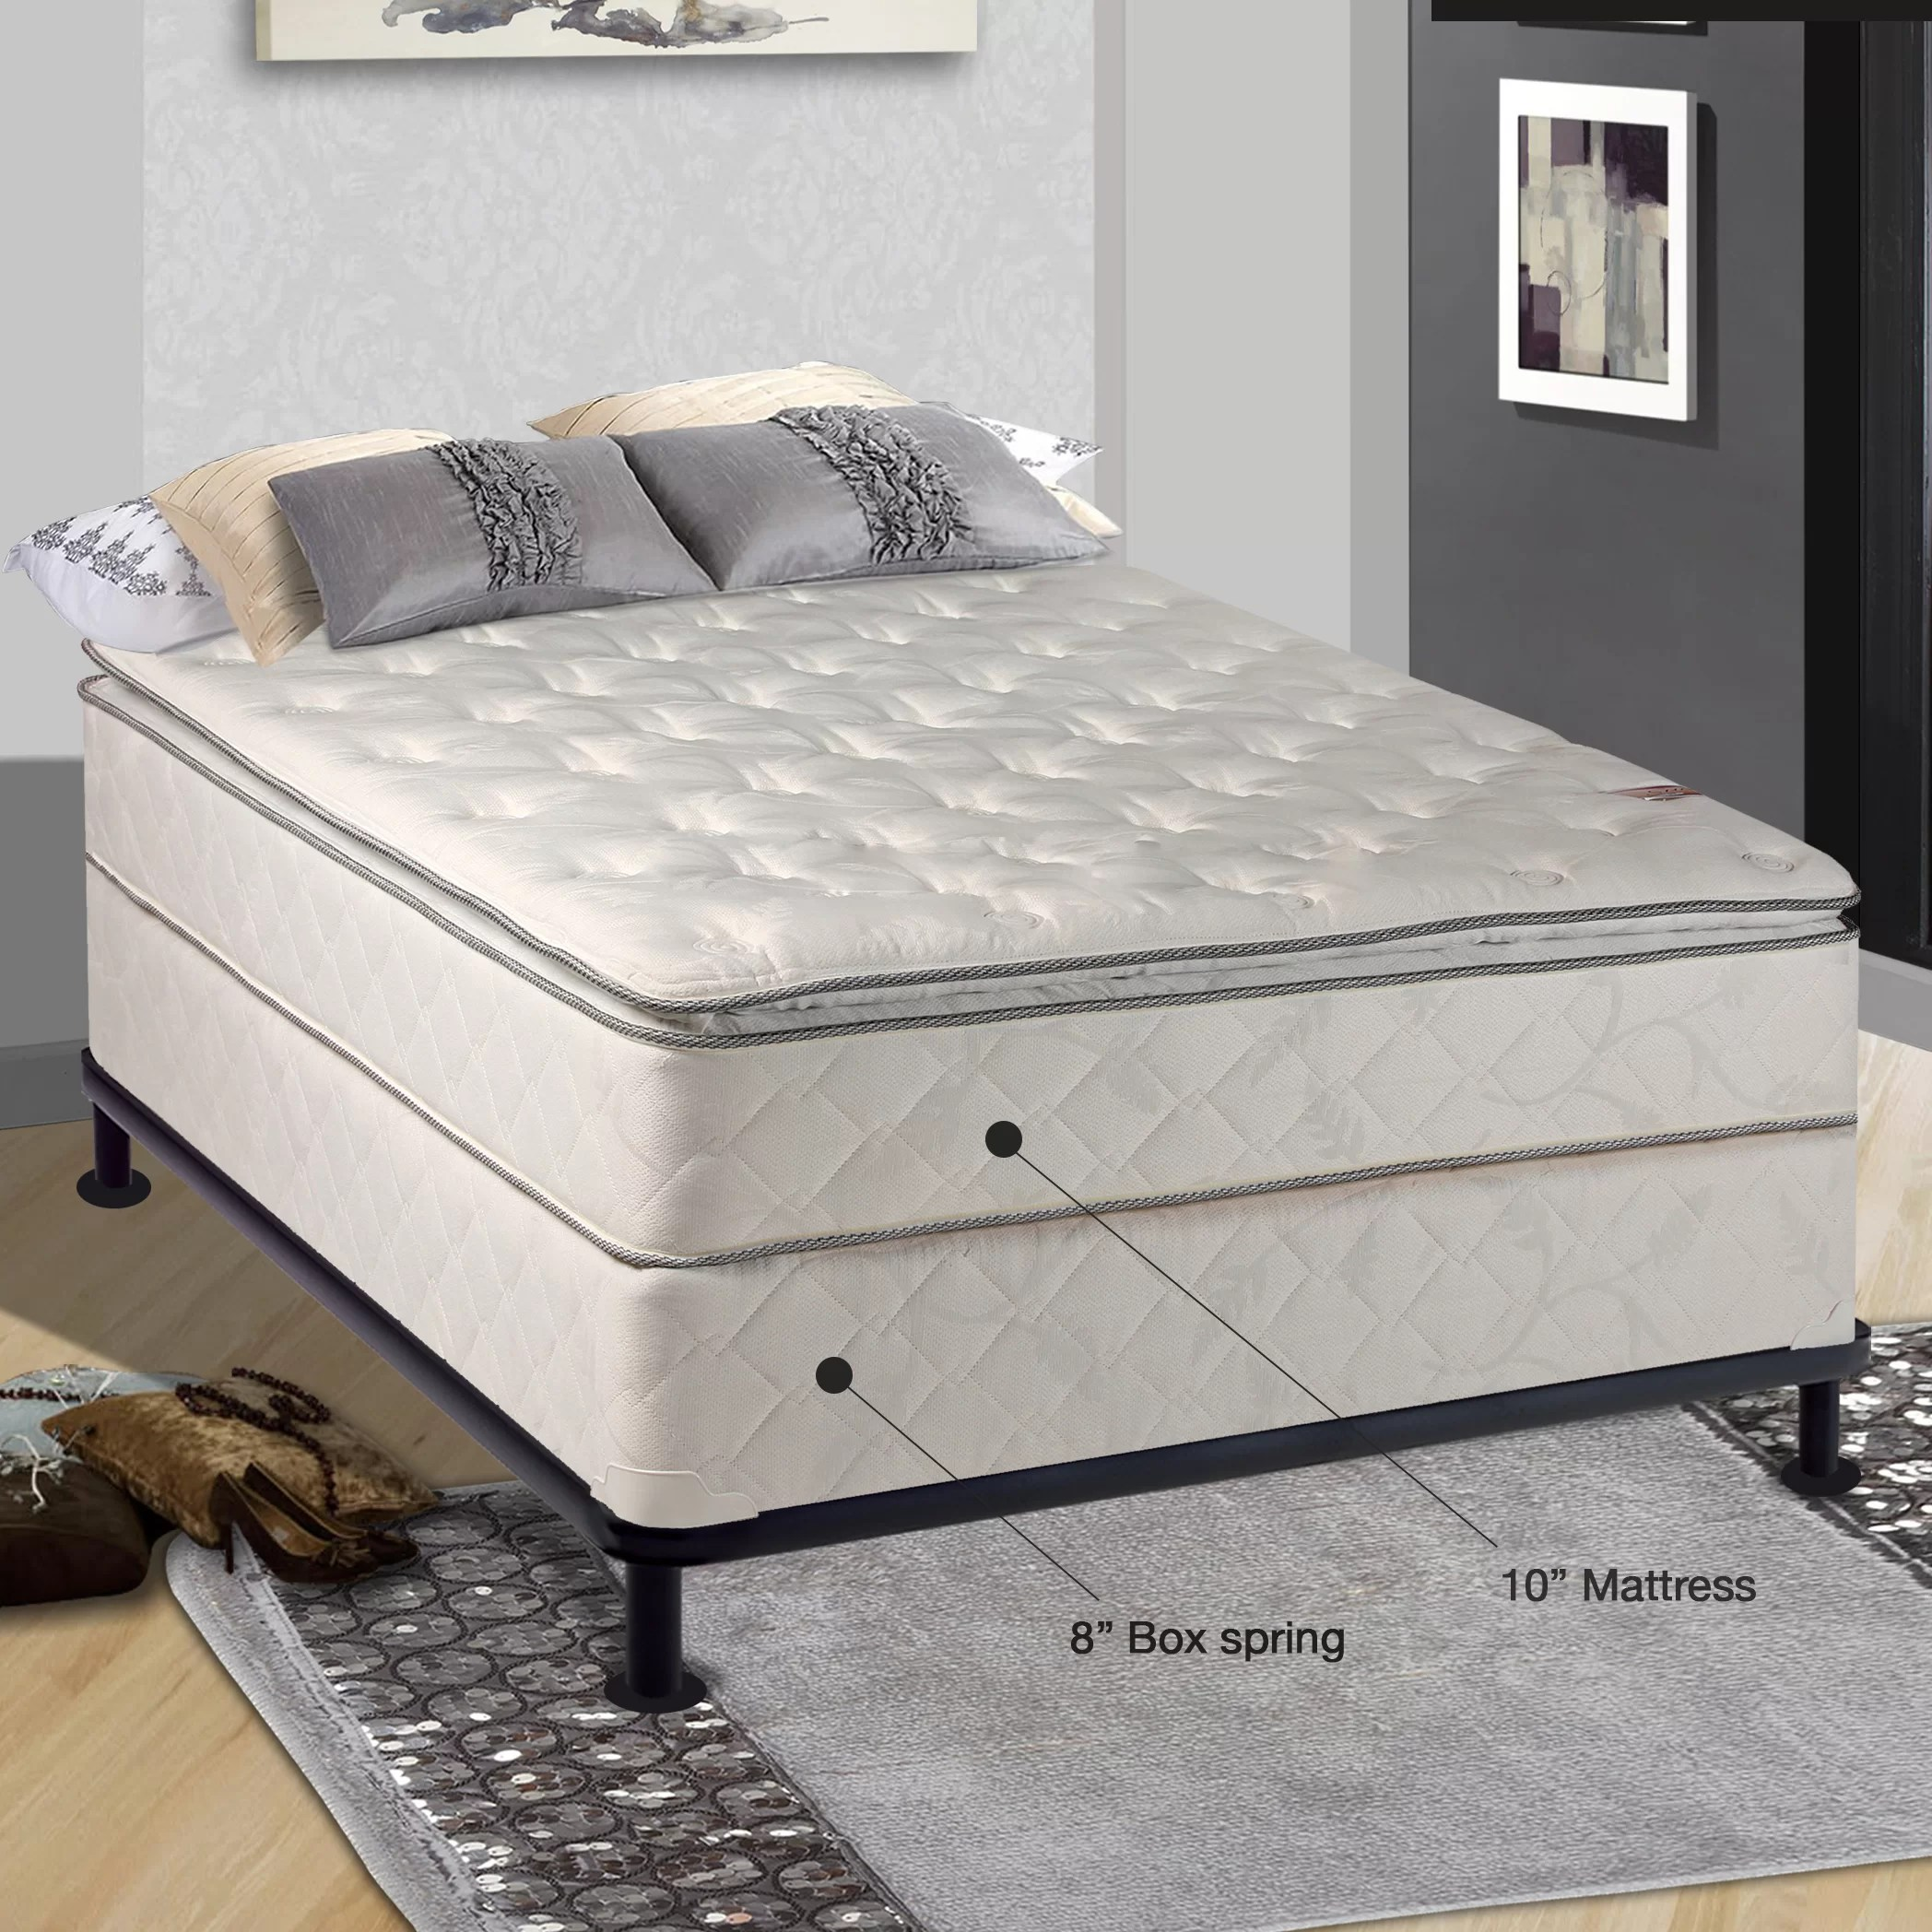 Boxspring Bed Spinal Solution Orthopedic 10 Quot Firm Mattress With Box